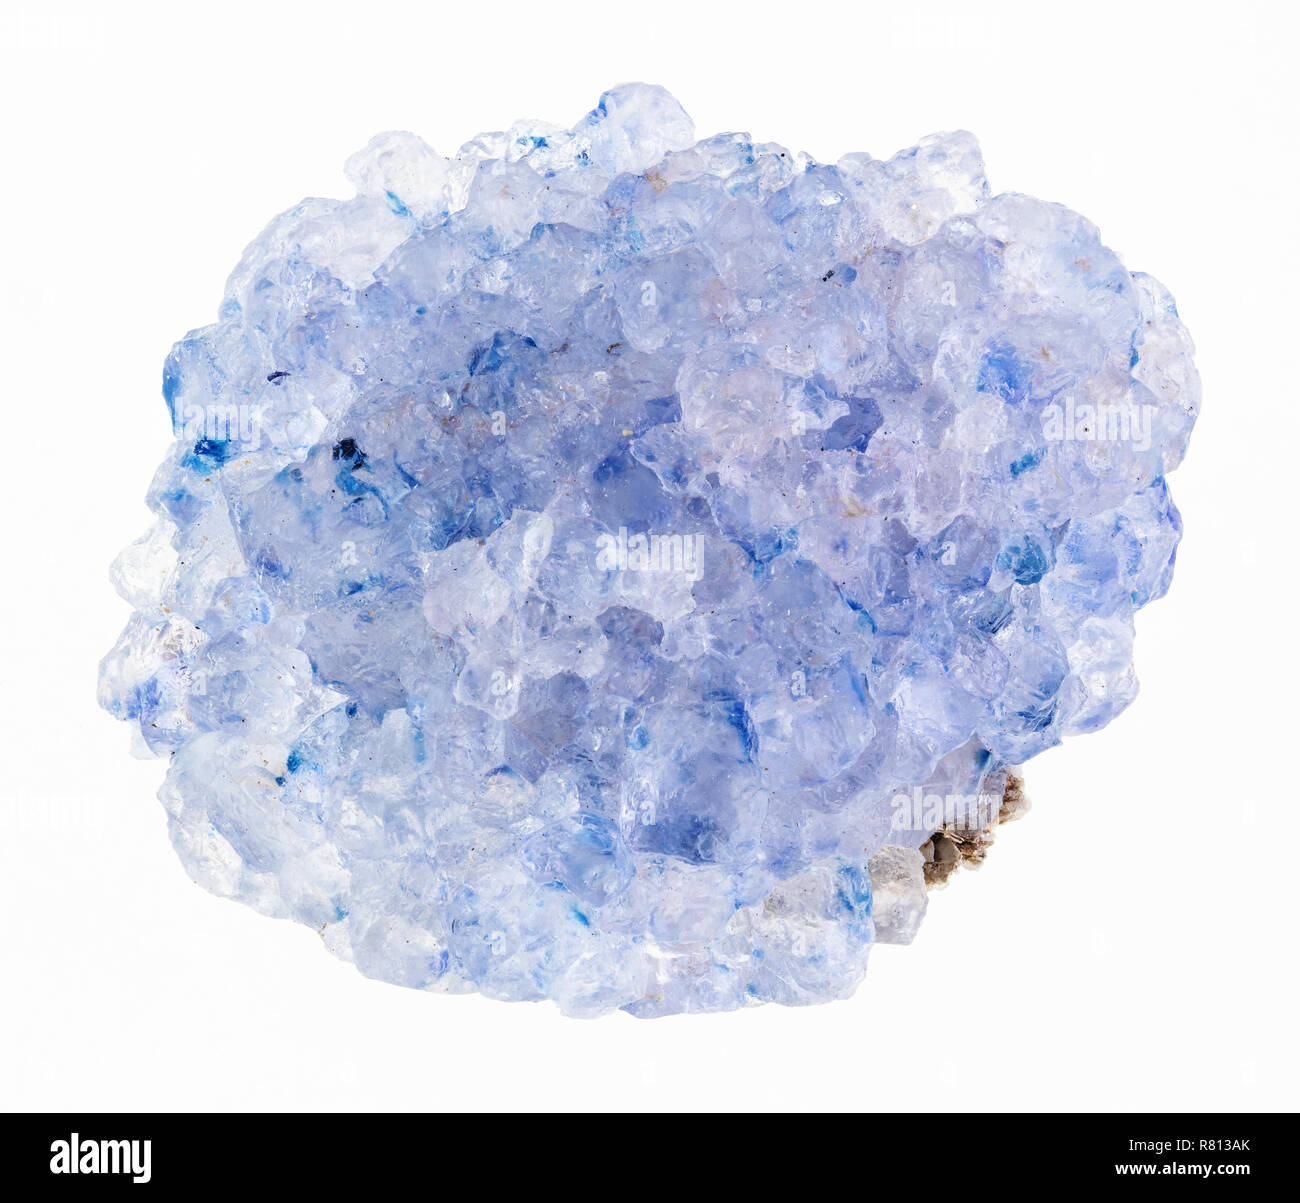 macro photography of natural mineral from geological collection - rough celestine (celestite) stone on white background - Stock Image